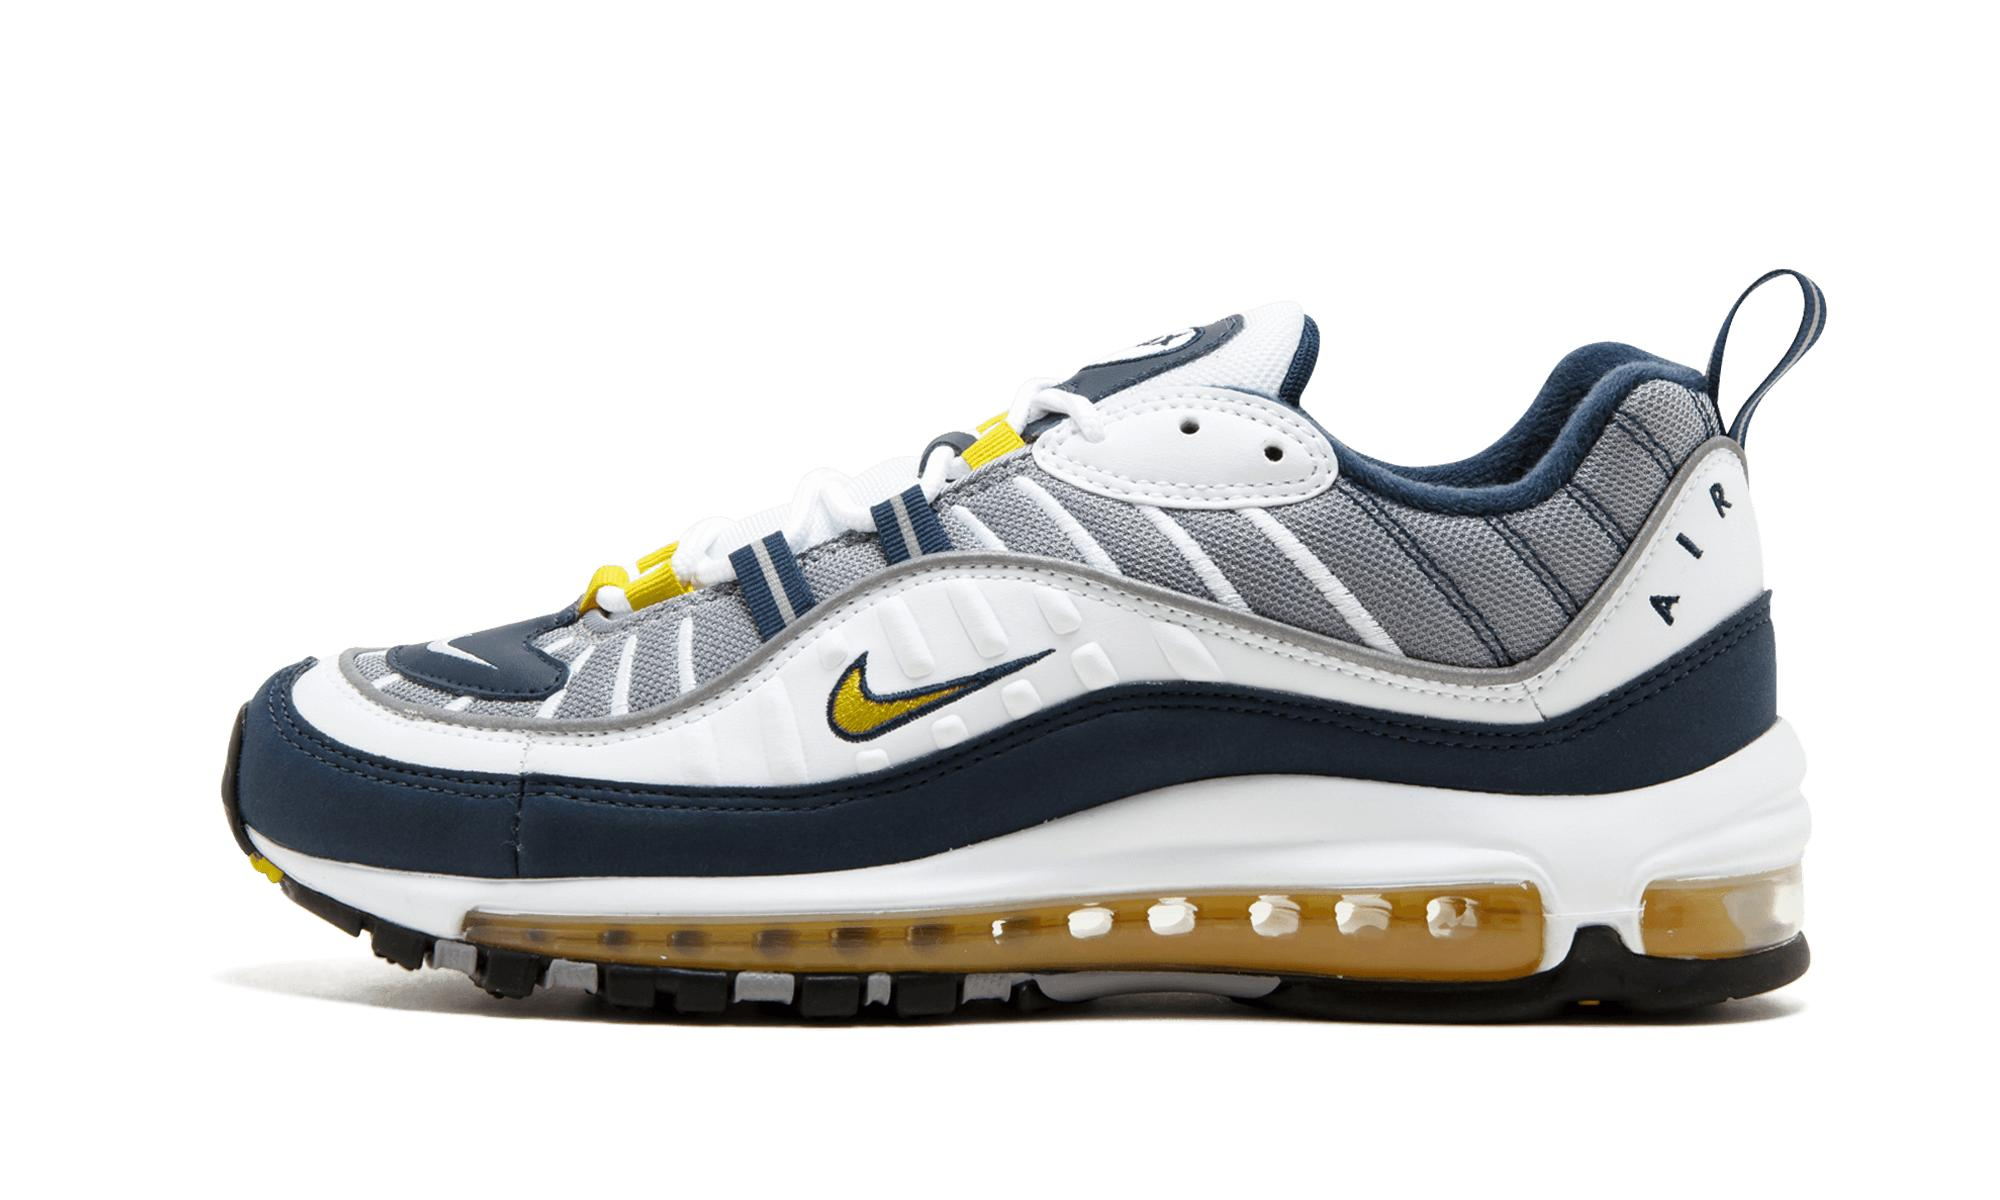 645d7116f4 Nike. Men's Blue Air Max 98. $295 From Stadium Goods